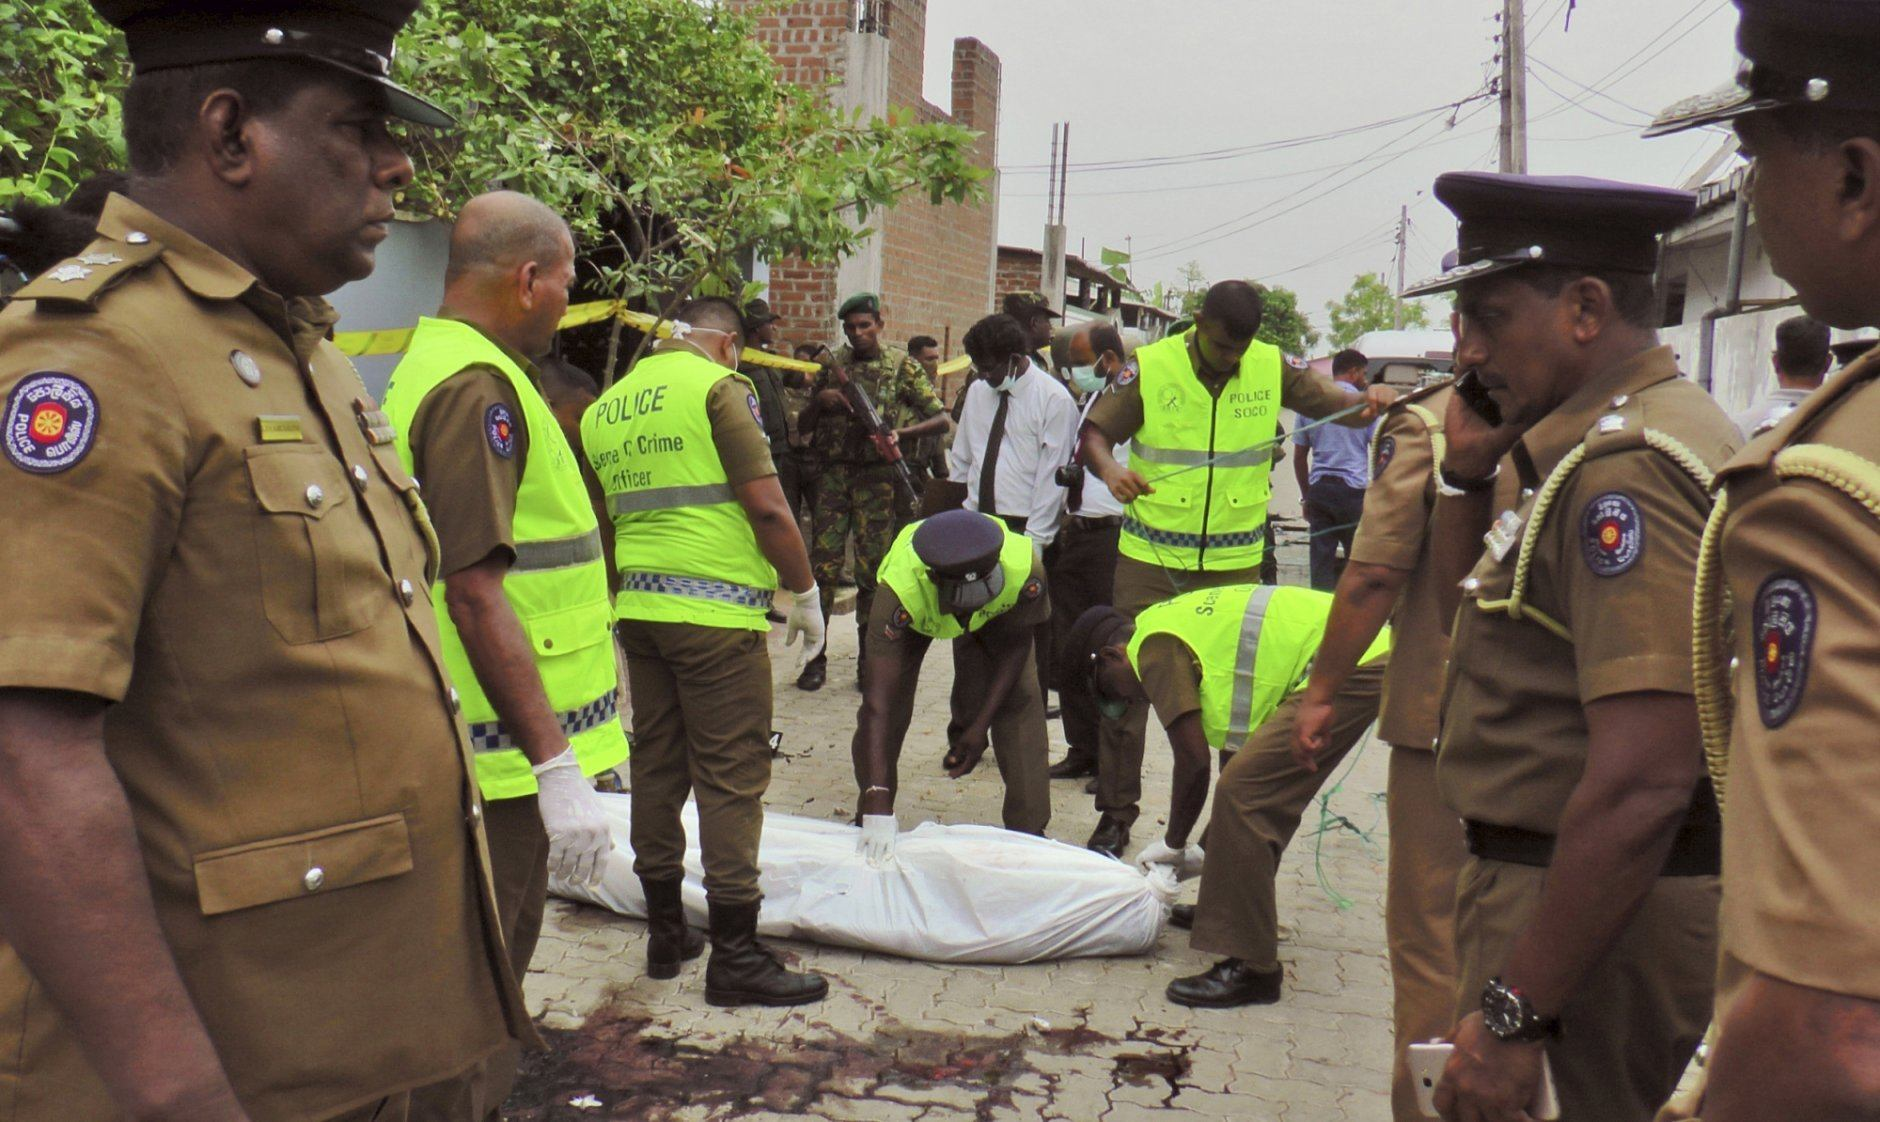 Sri Lankan policemen cover the body of a alleged terrorist after he was shot during a gun-battle in Kalmunai, in eastern Sri Lanka, Saturday, April 27, 2019. Militants linked to Easter suicide bombings opened fire and set off explosives during a raid by Sri Lankan security forces on a house in the country's east, leaving behind 15 bodies, including six children. (AP Photo/Achala Upendra)